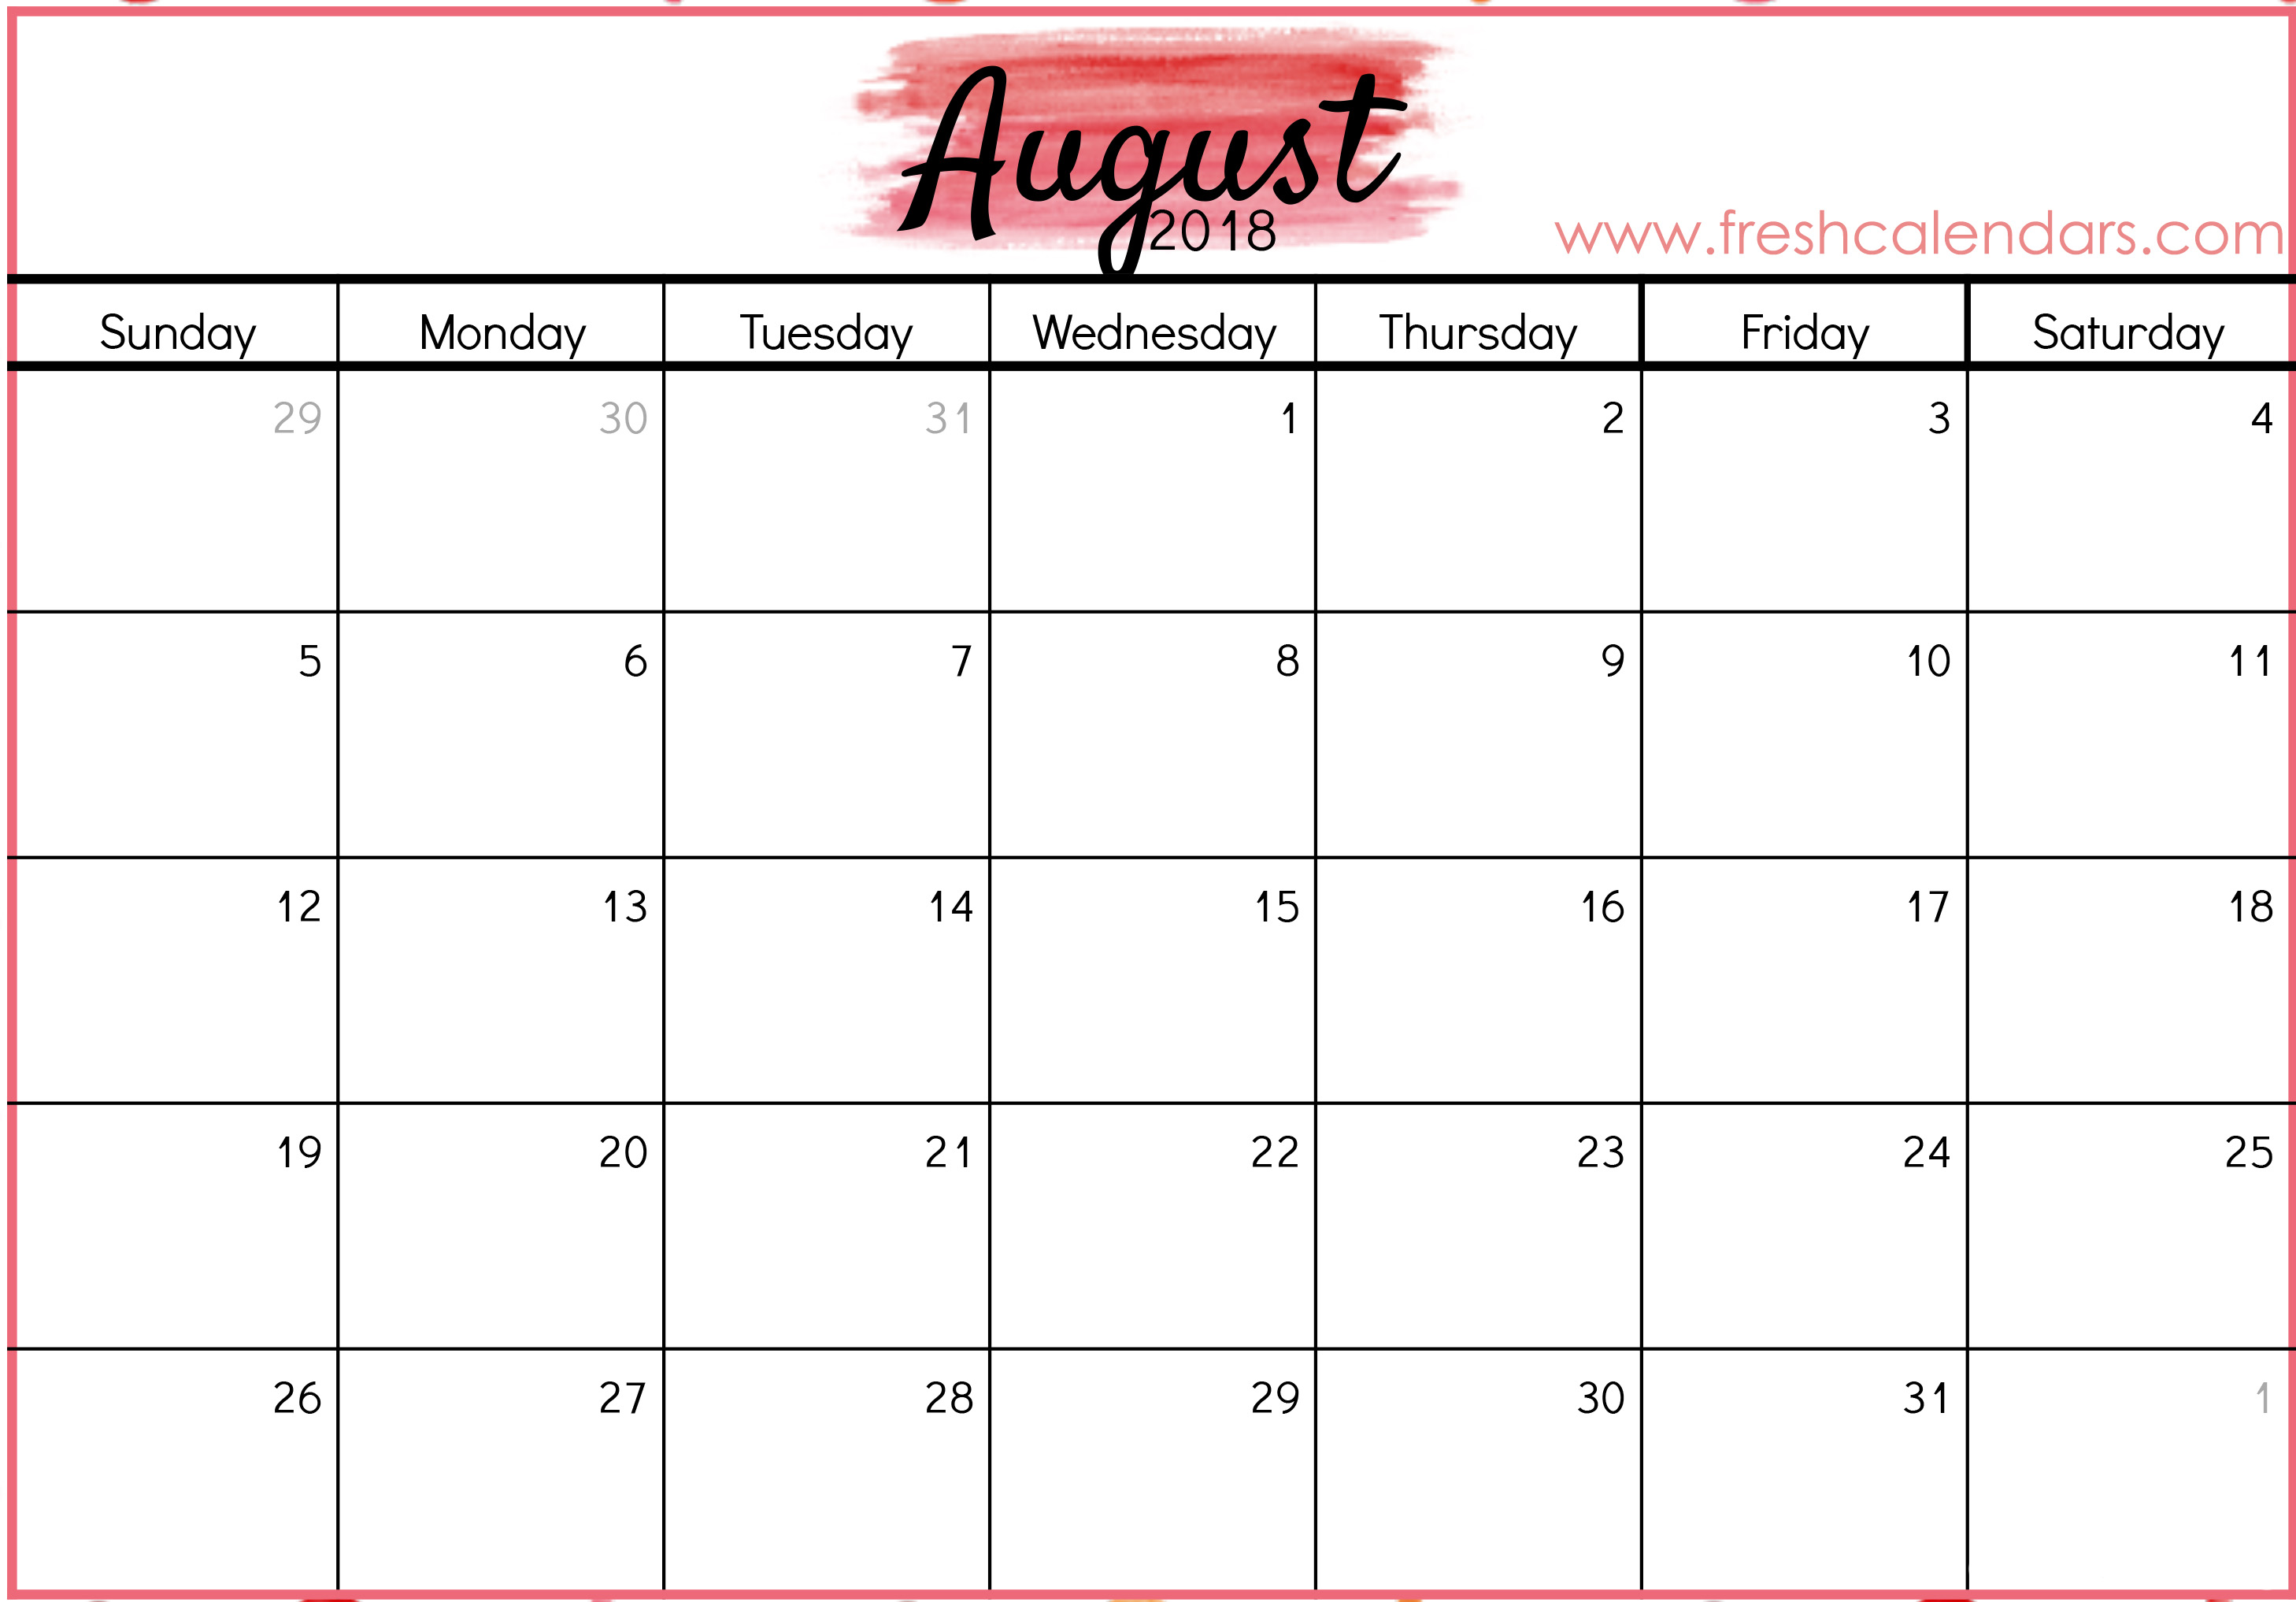 image relating to Printable August Calendar named August 2018 Calendar Printable - Fresh new Calendars